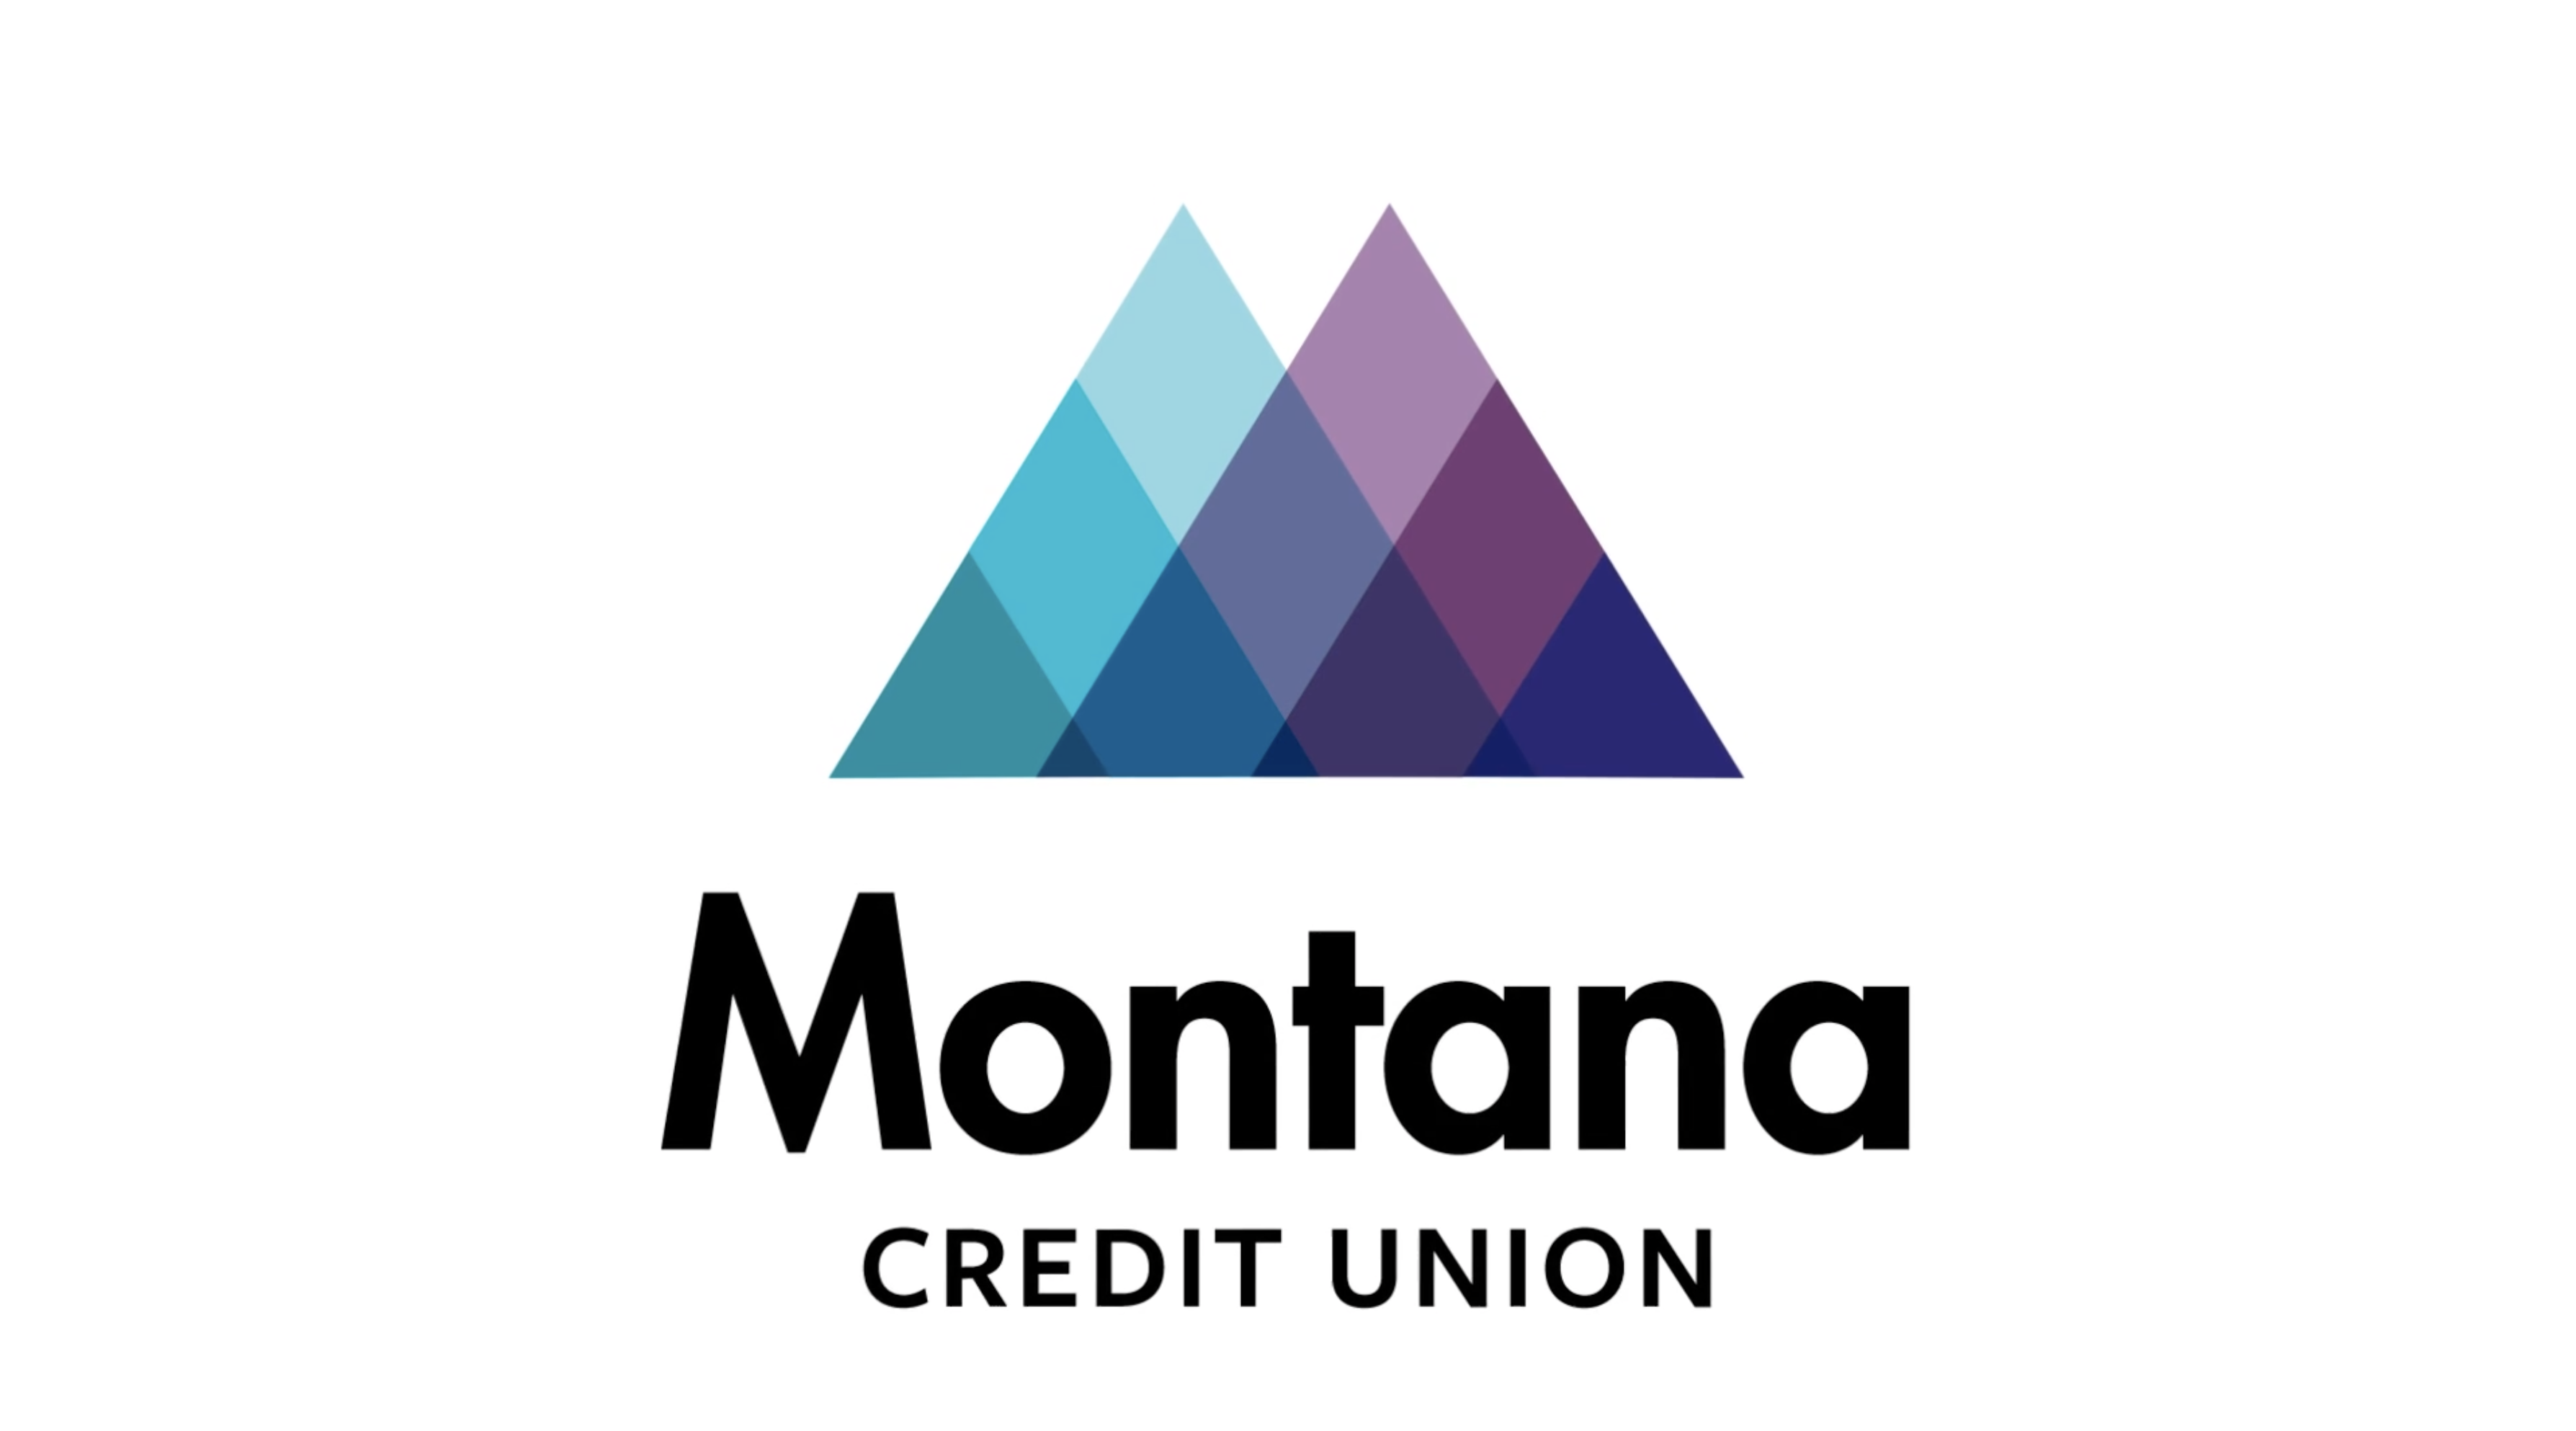 Montana Credit Union Brand Launch Film.png